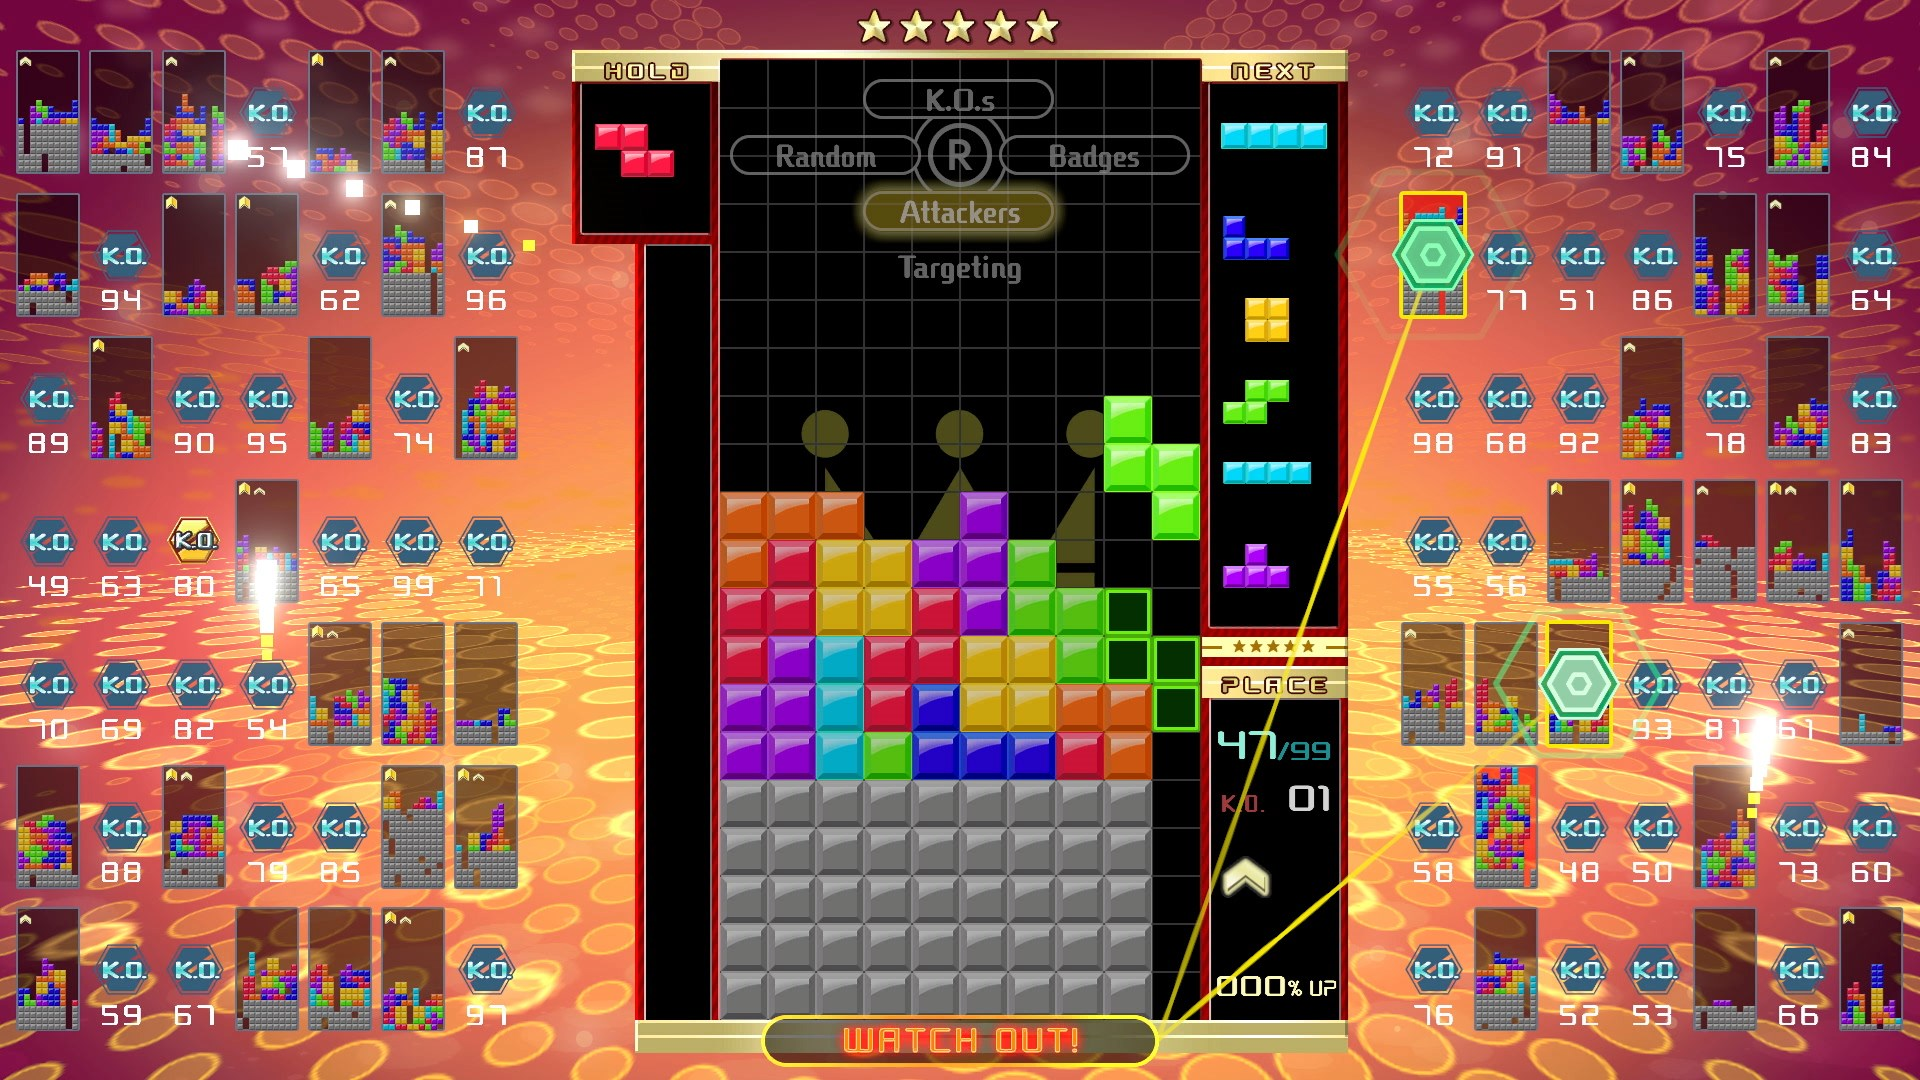 Tetris 99 updated to Ver. 2.0.0, full patch notes available